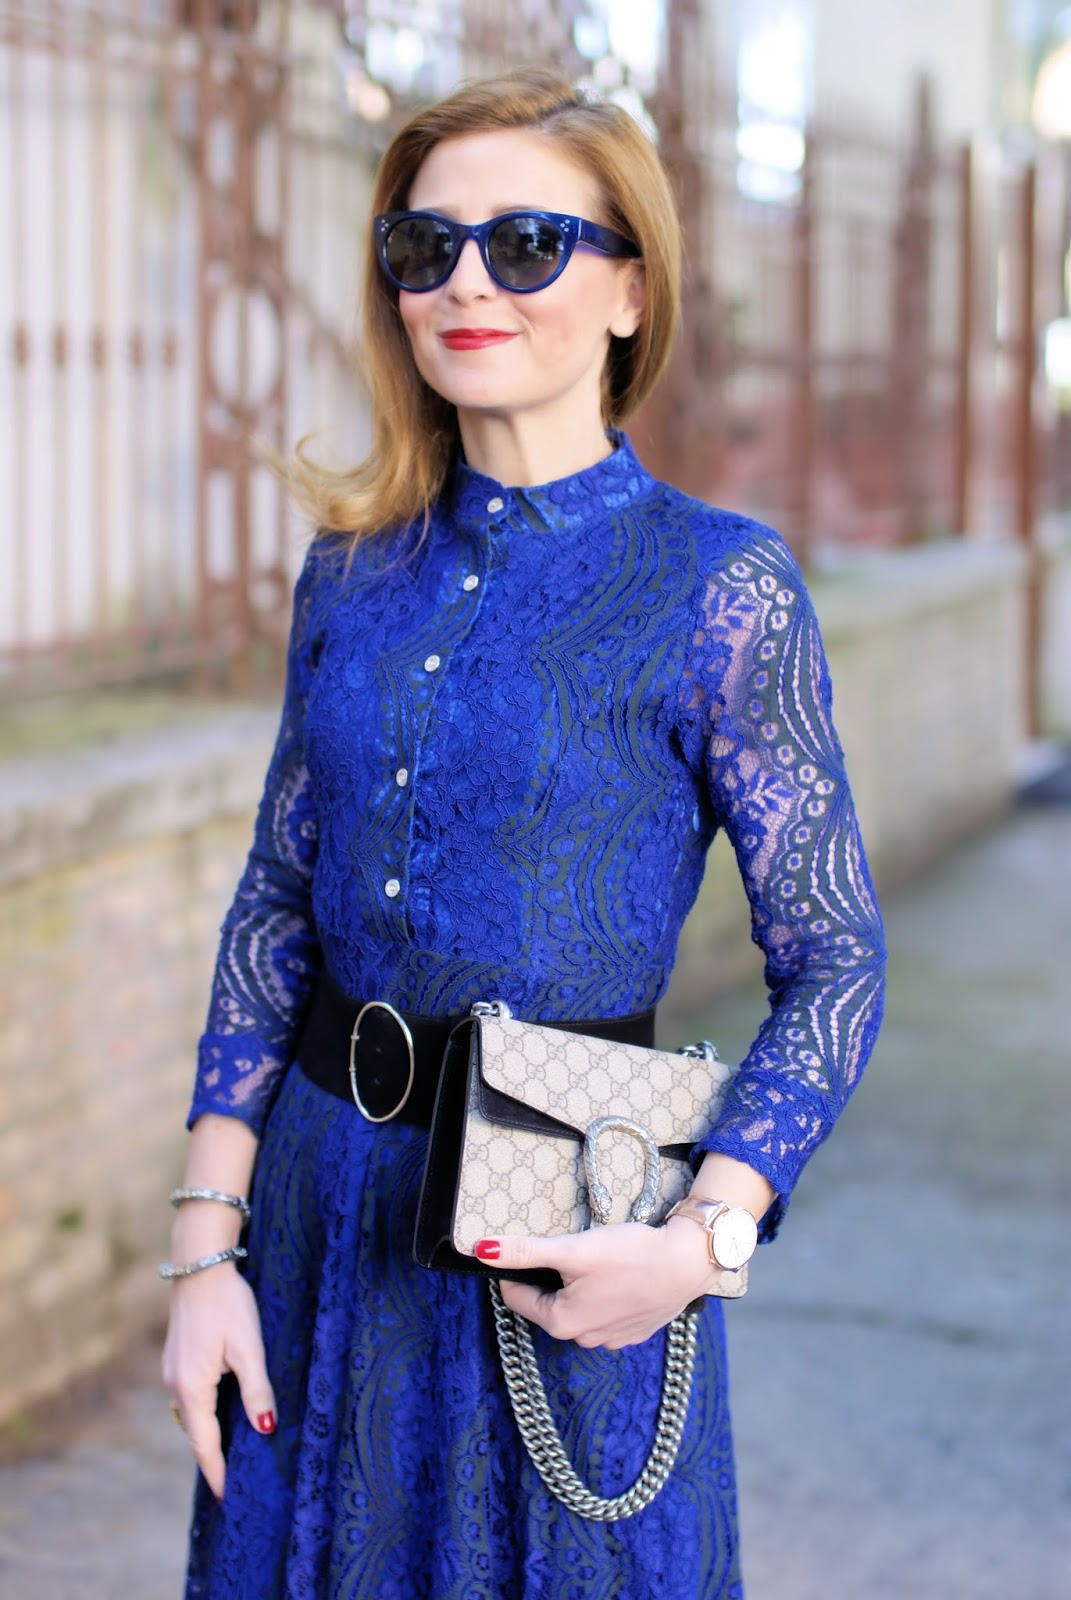 Blue lace dress and Gucci bag on Fashion and Cookies fashion blog, fashion blogger style